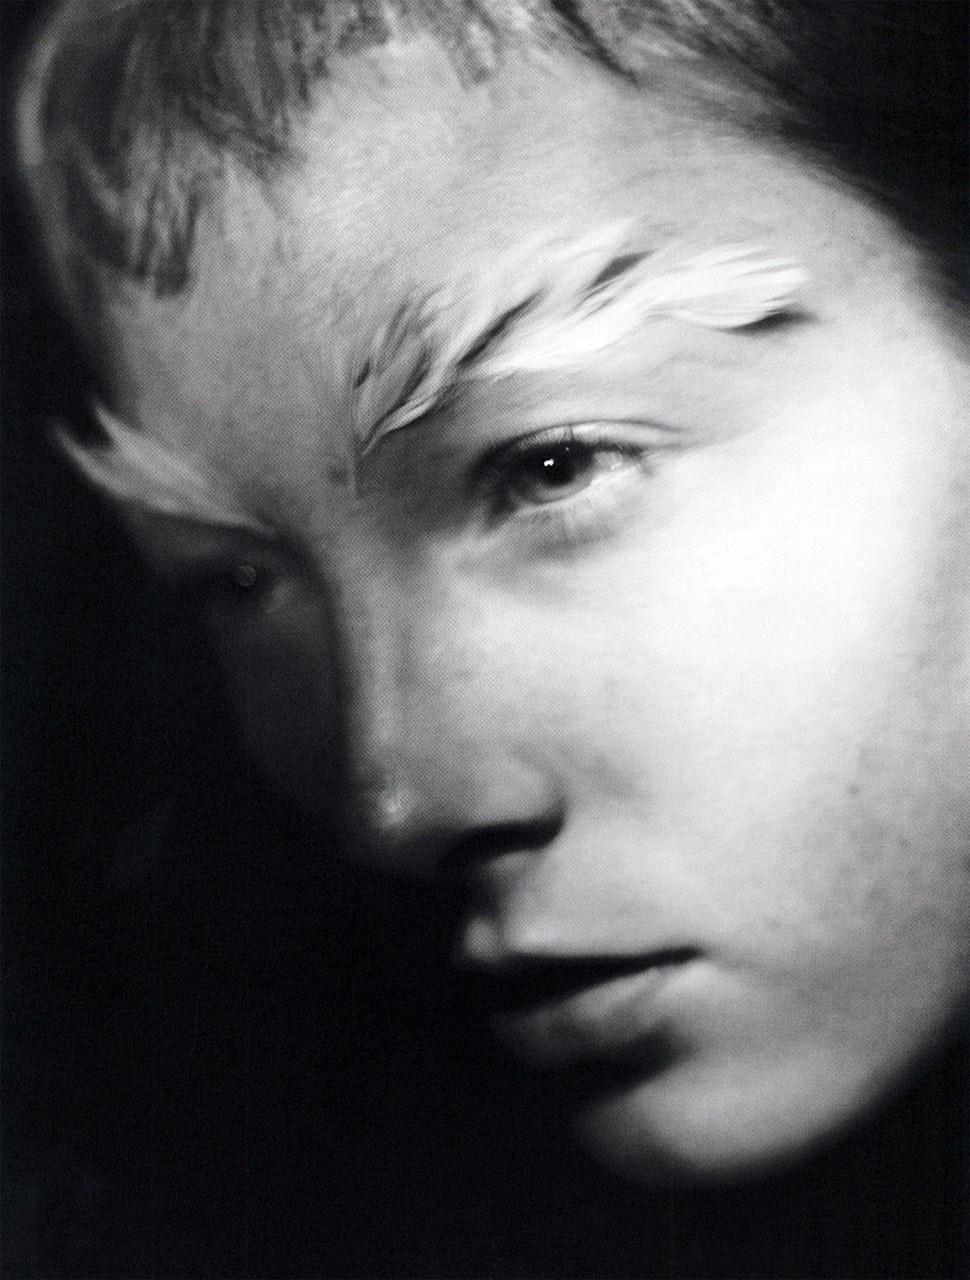 Maggie_Rizer-Paolo_Roversi-01-thedoppelganger.jpg